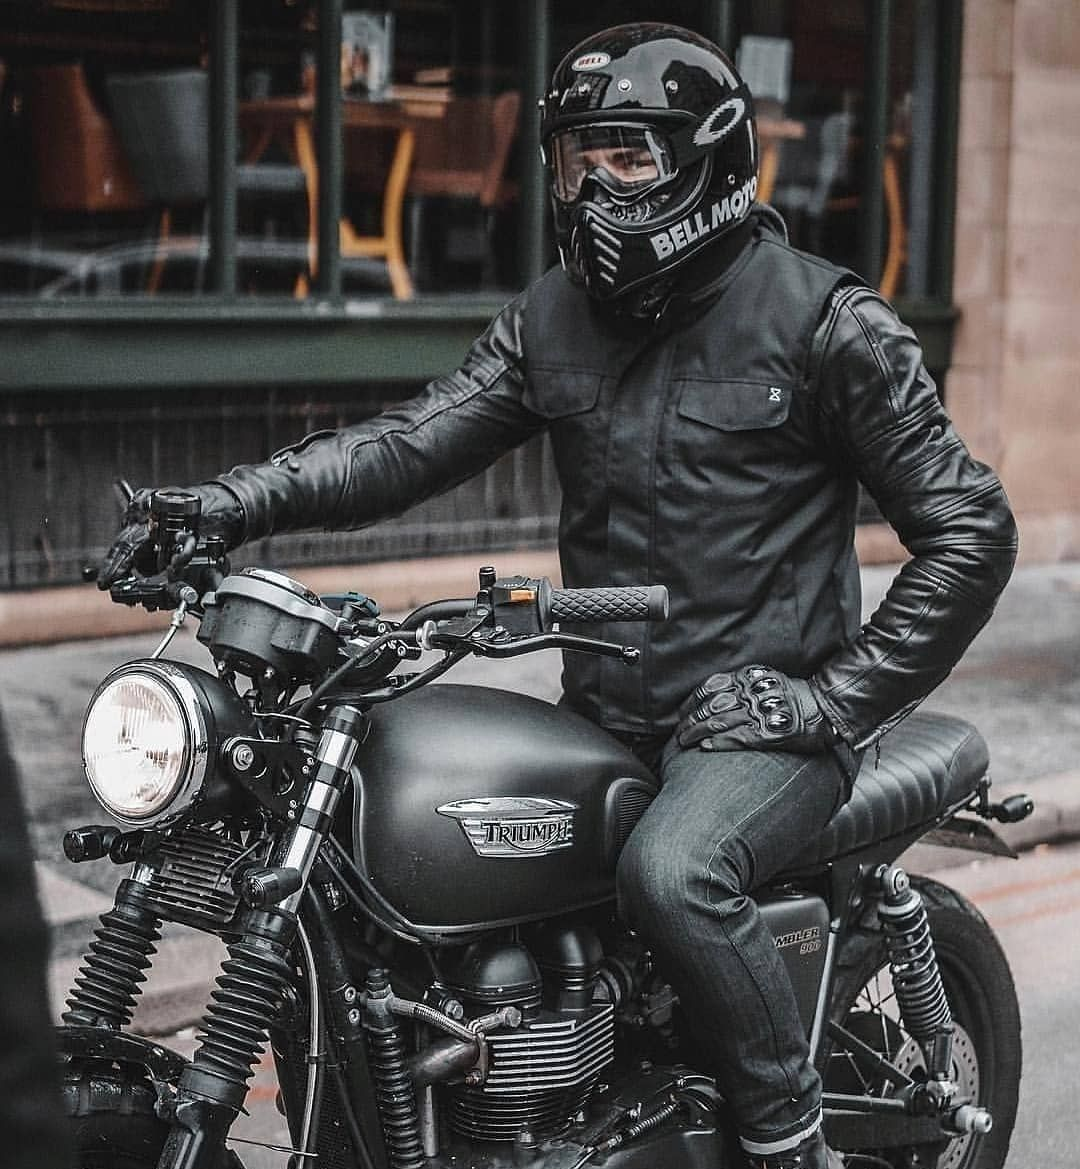 Bell Powersports Malaysia On Instagram Ride With Bell Moto 3 Bell Moto 3 Triumph Bikes Scrambler Motorcycle Triumph Cafe Racer